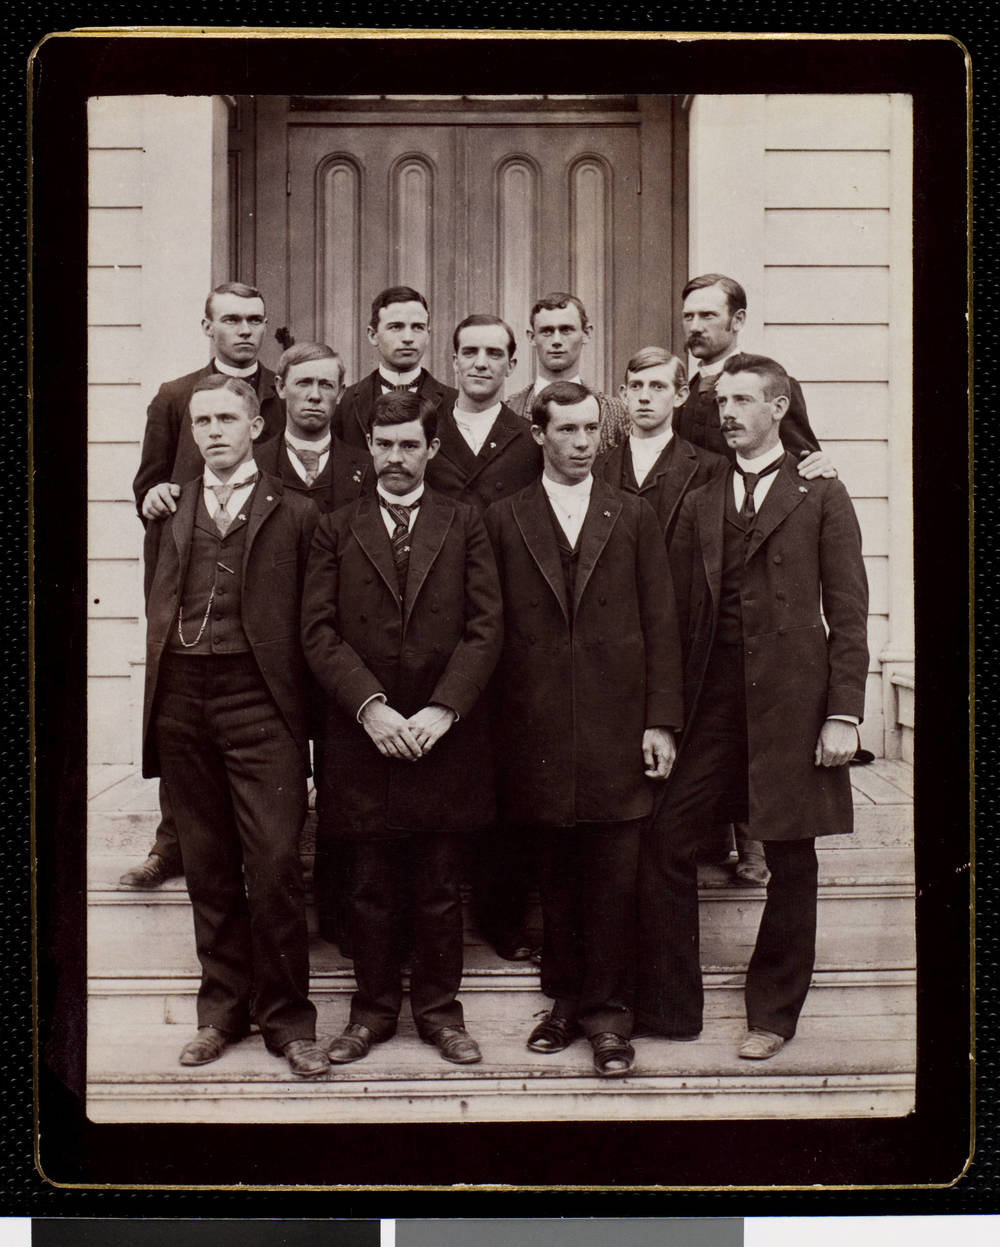 usc_sigma_chi_fraternity_brothers_ca-_1890_uaic-fra-1880-1920-0011.jpg